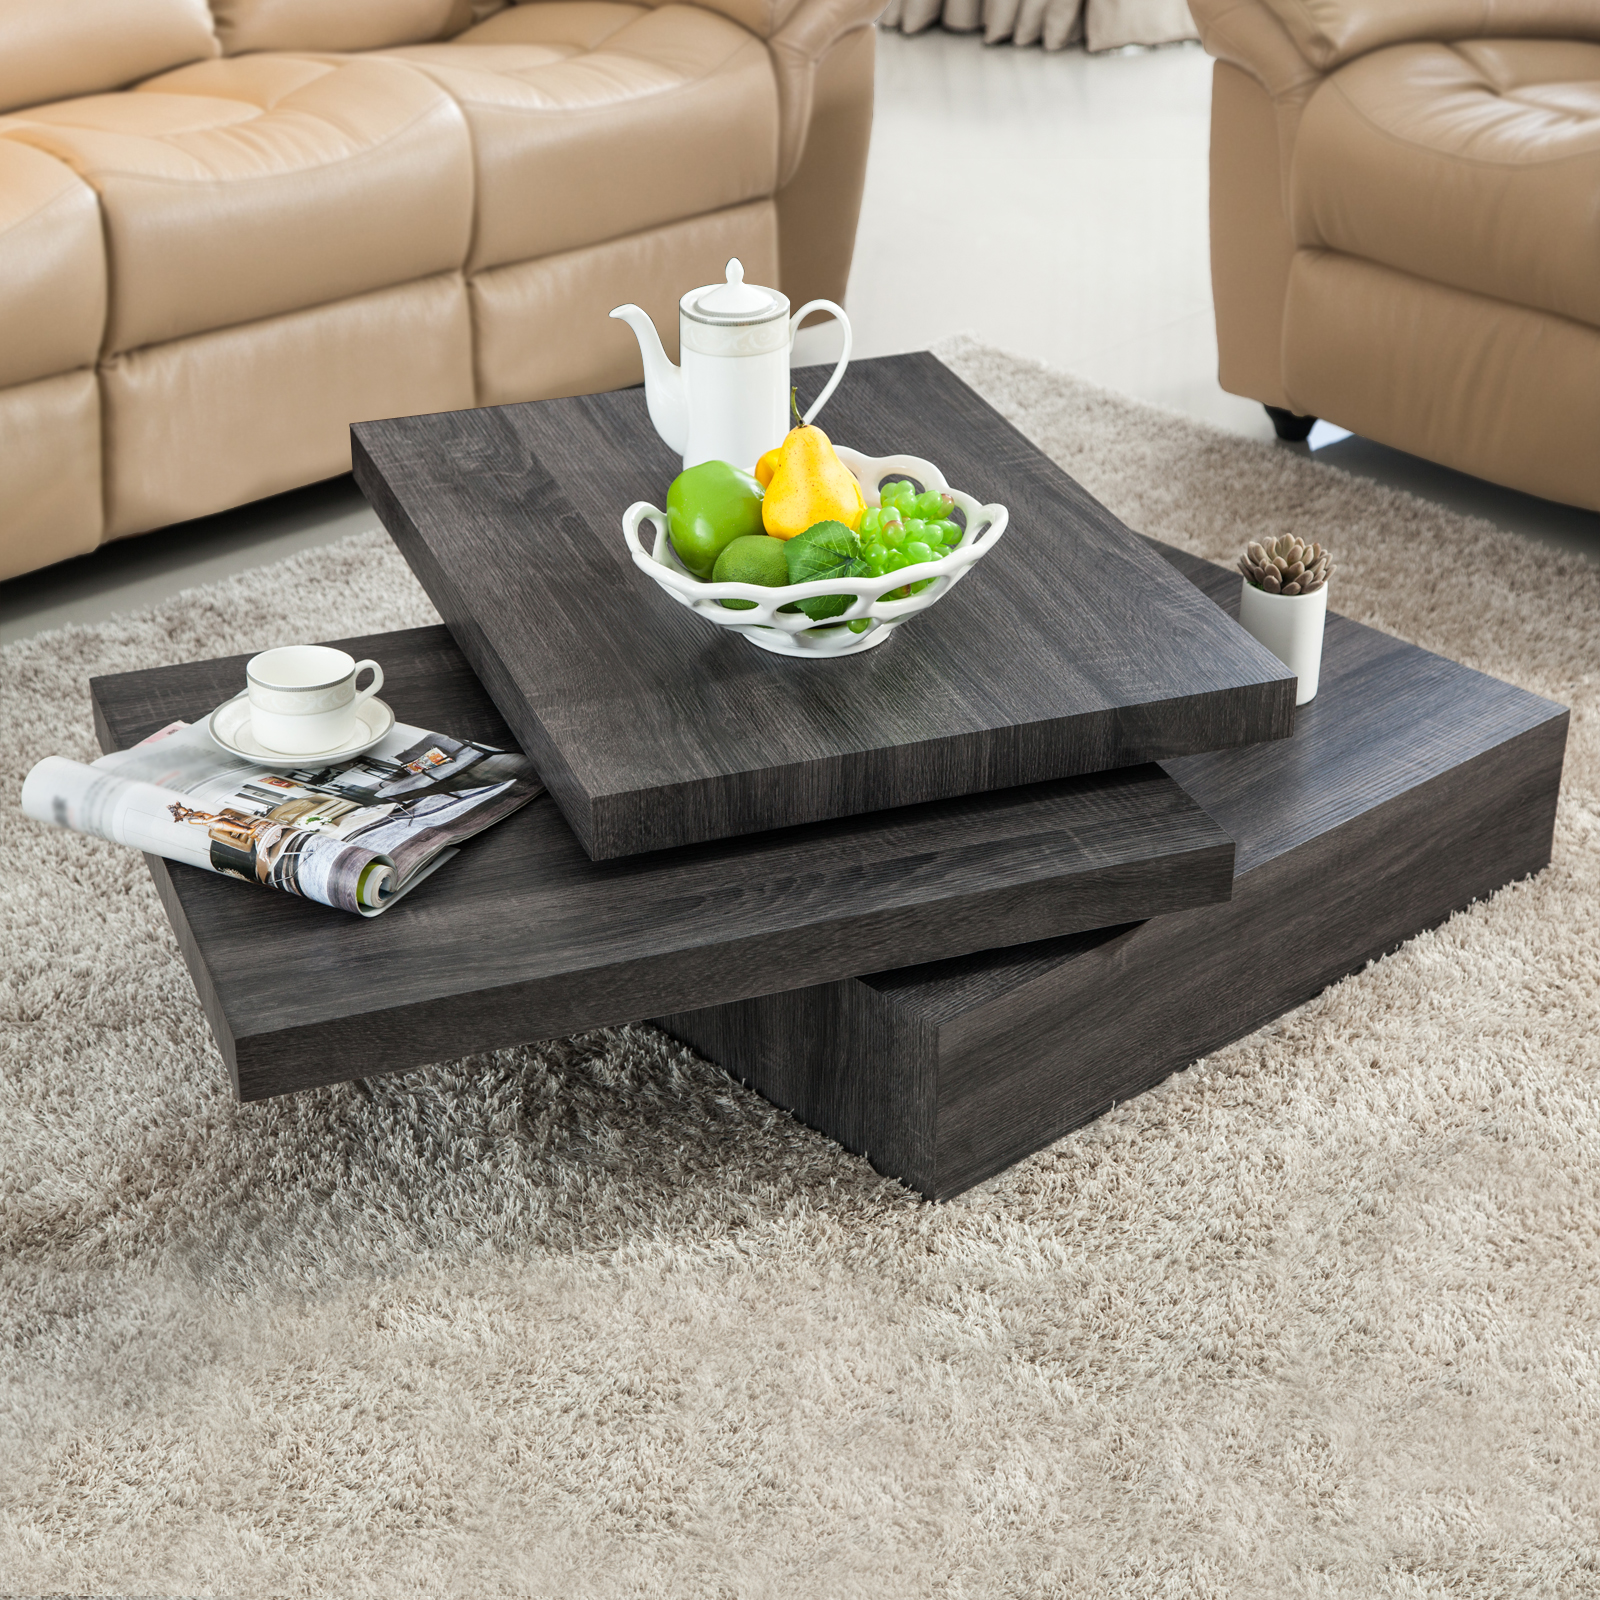 Glass Coffee Table For Sale On Ebay: Oak Square Rotating Wood Coffee Table With 3 Layers Home